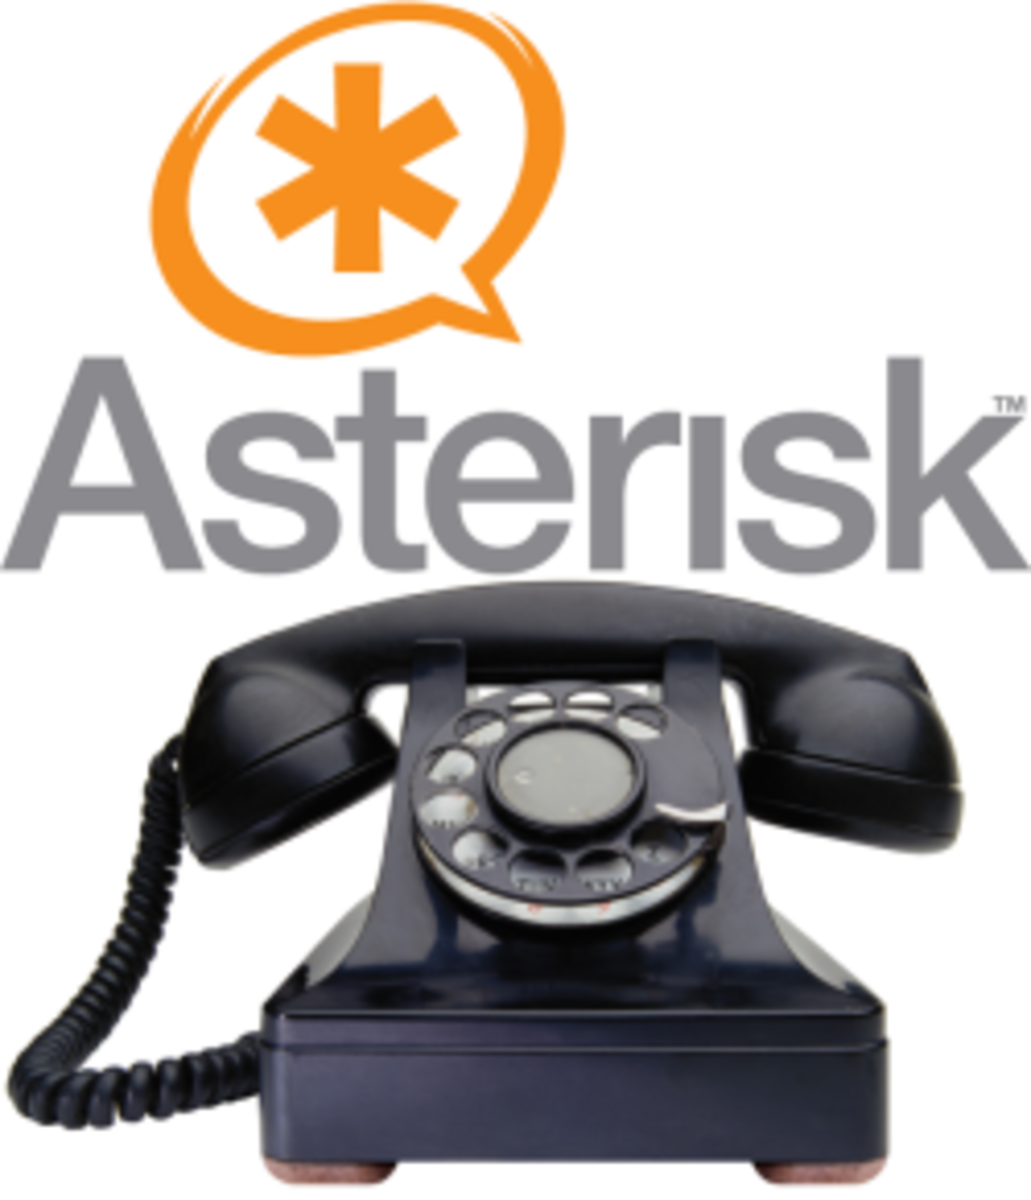 How to Install Asterisk on Ubuntu – Setting up Asterisk PBX